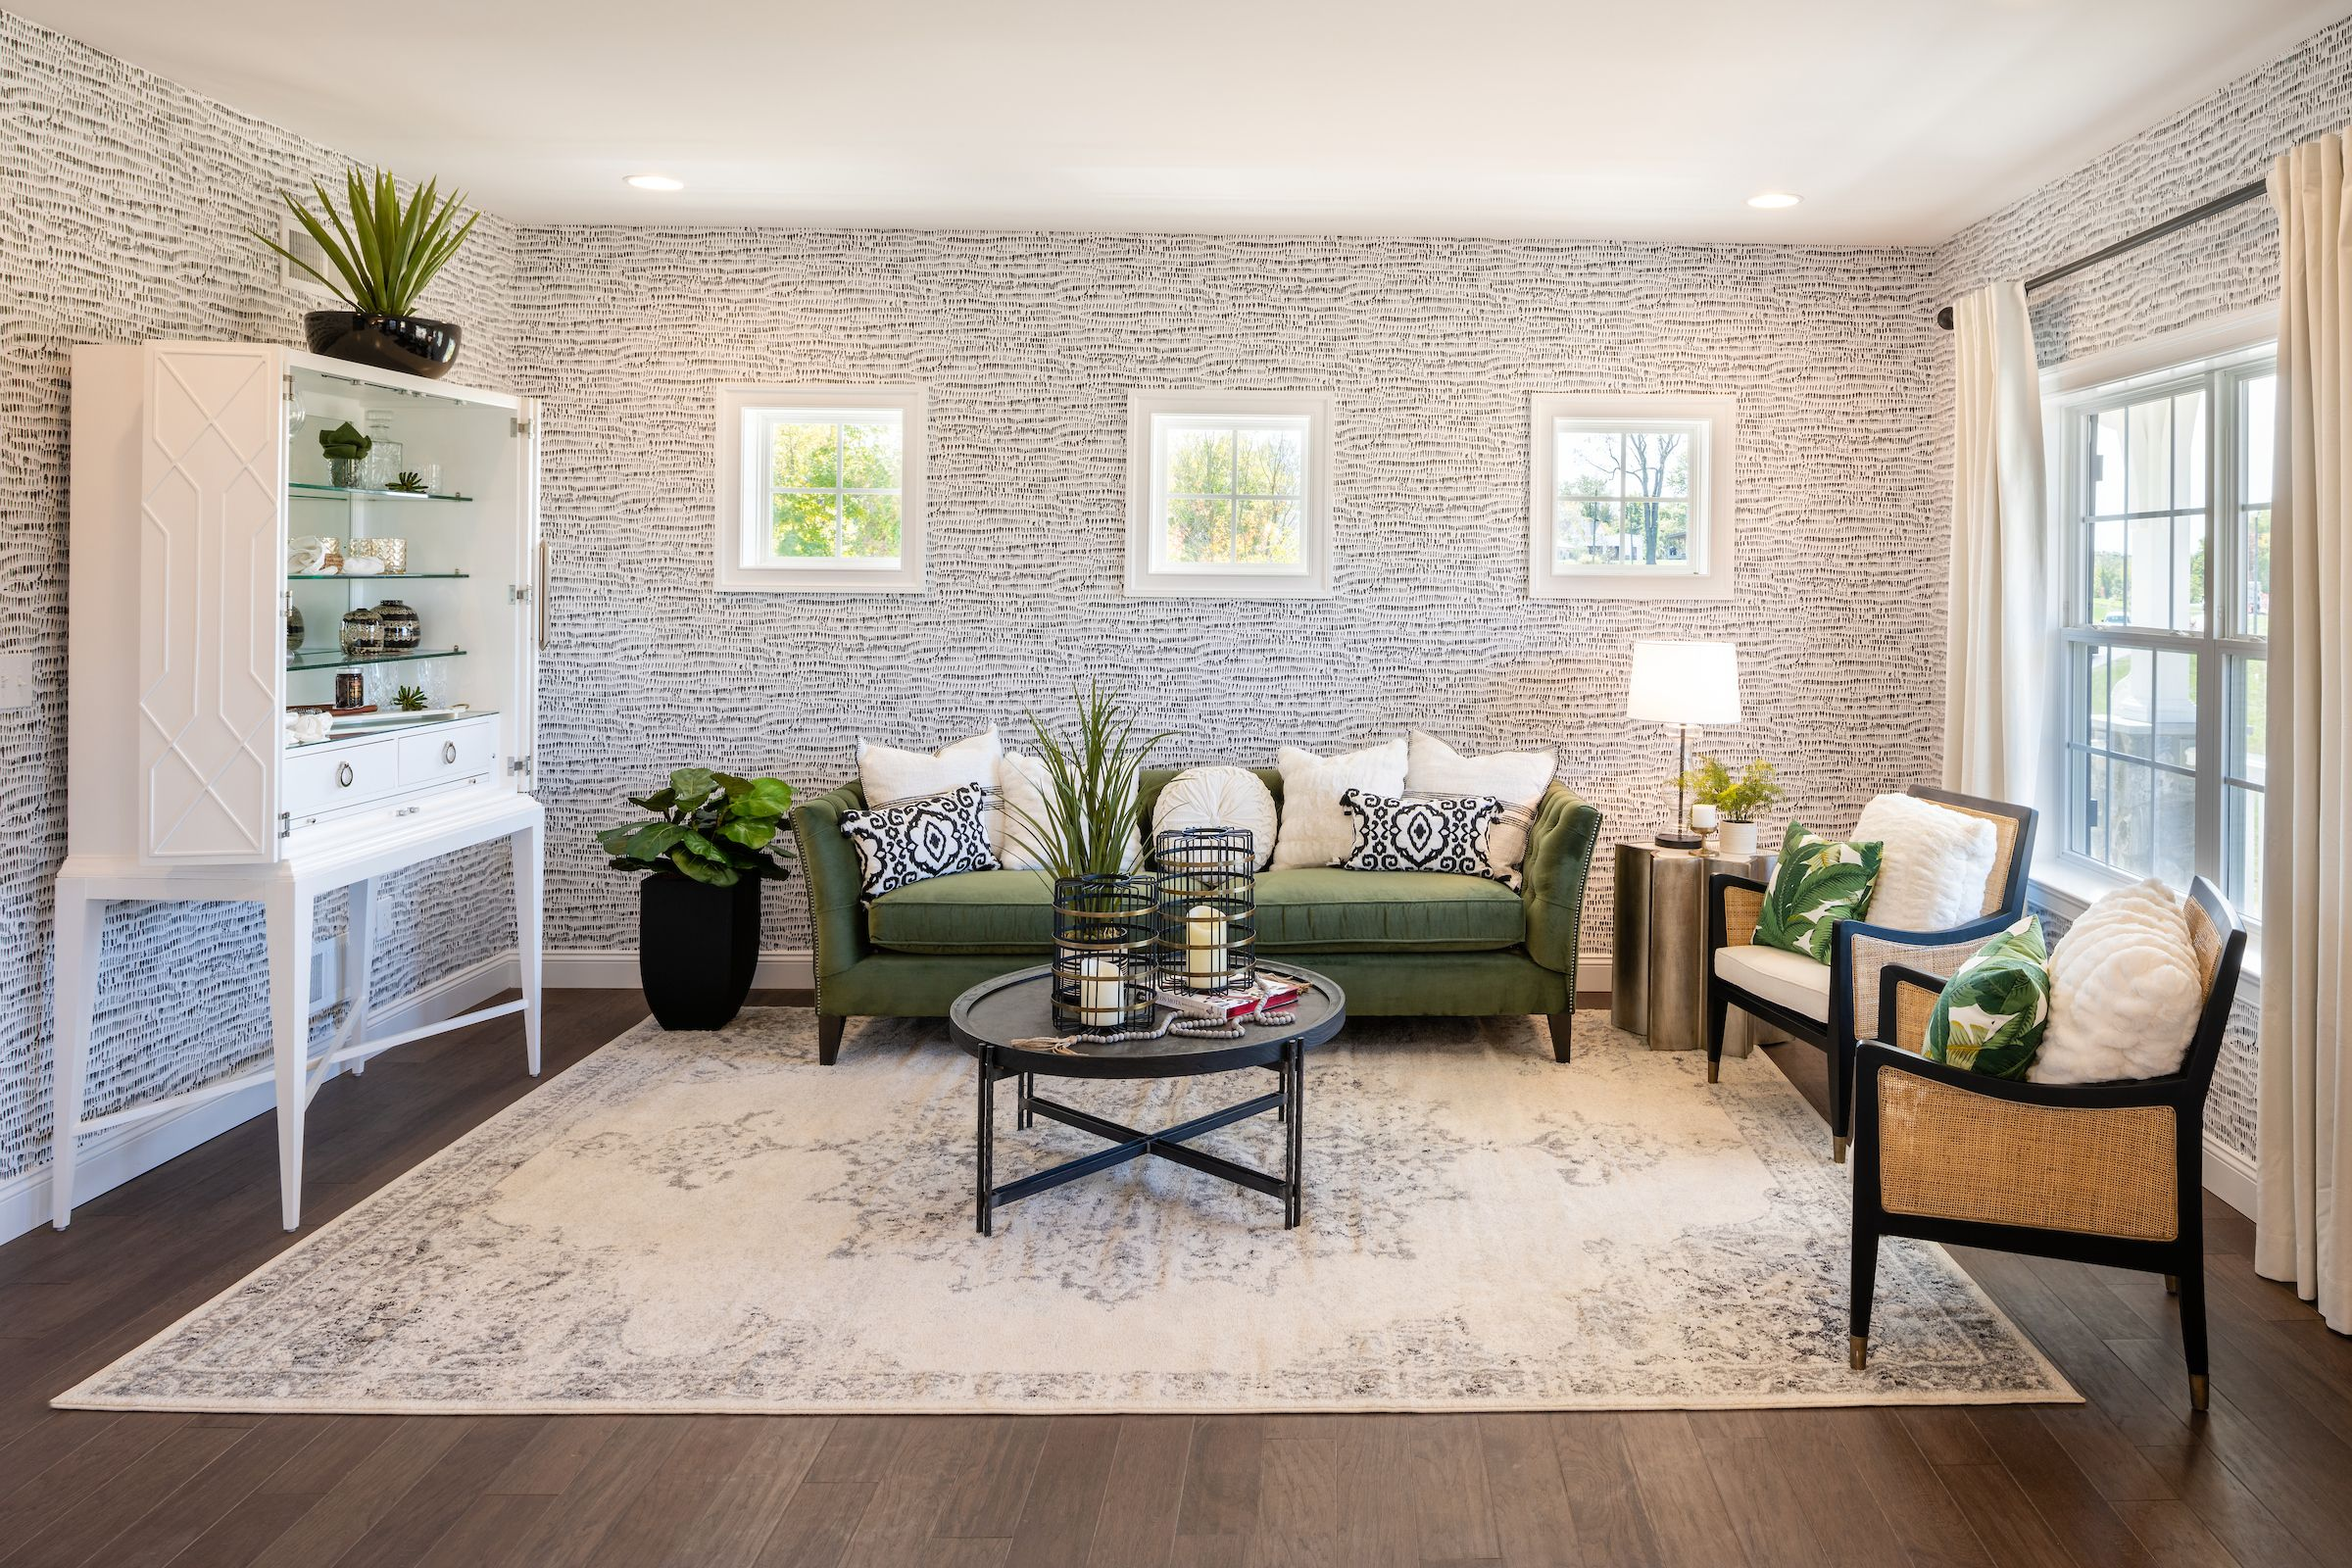 Living Area featured in the Hawthorne Manor By Keystone Custom Homes in Washington, MD